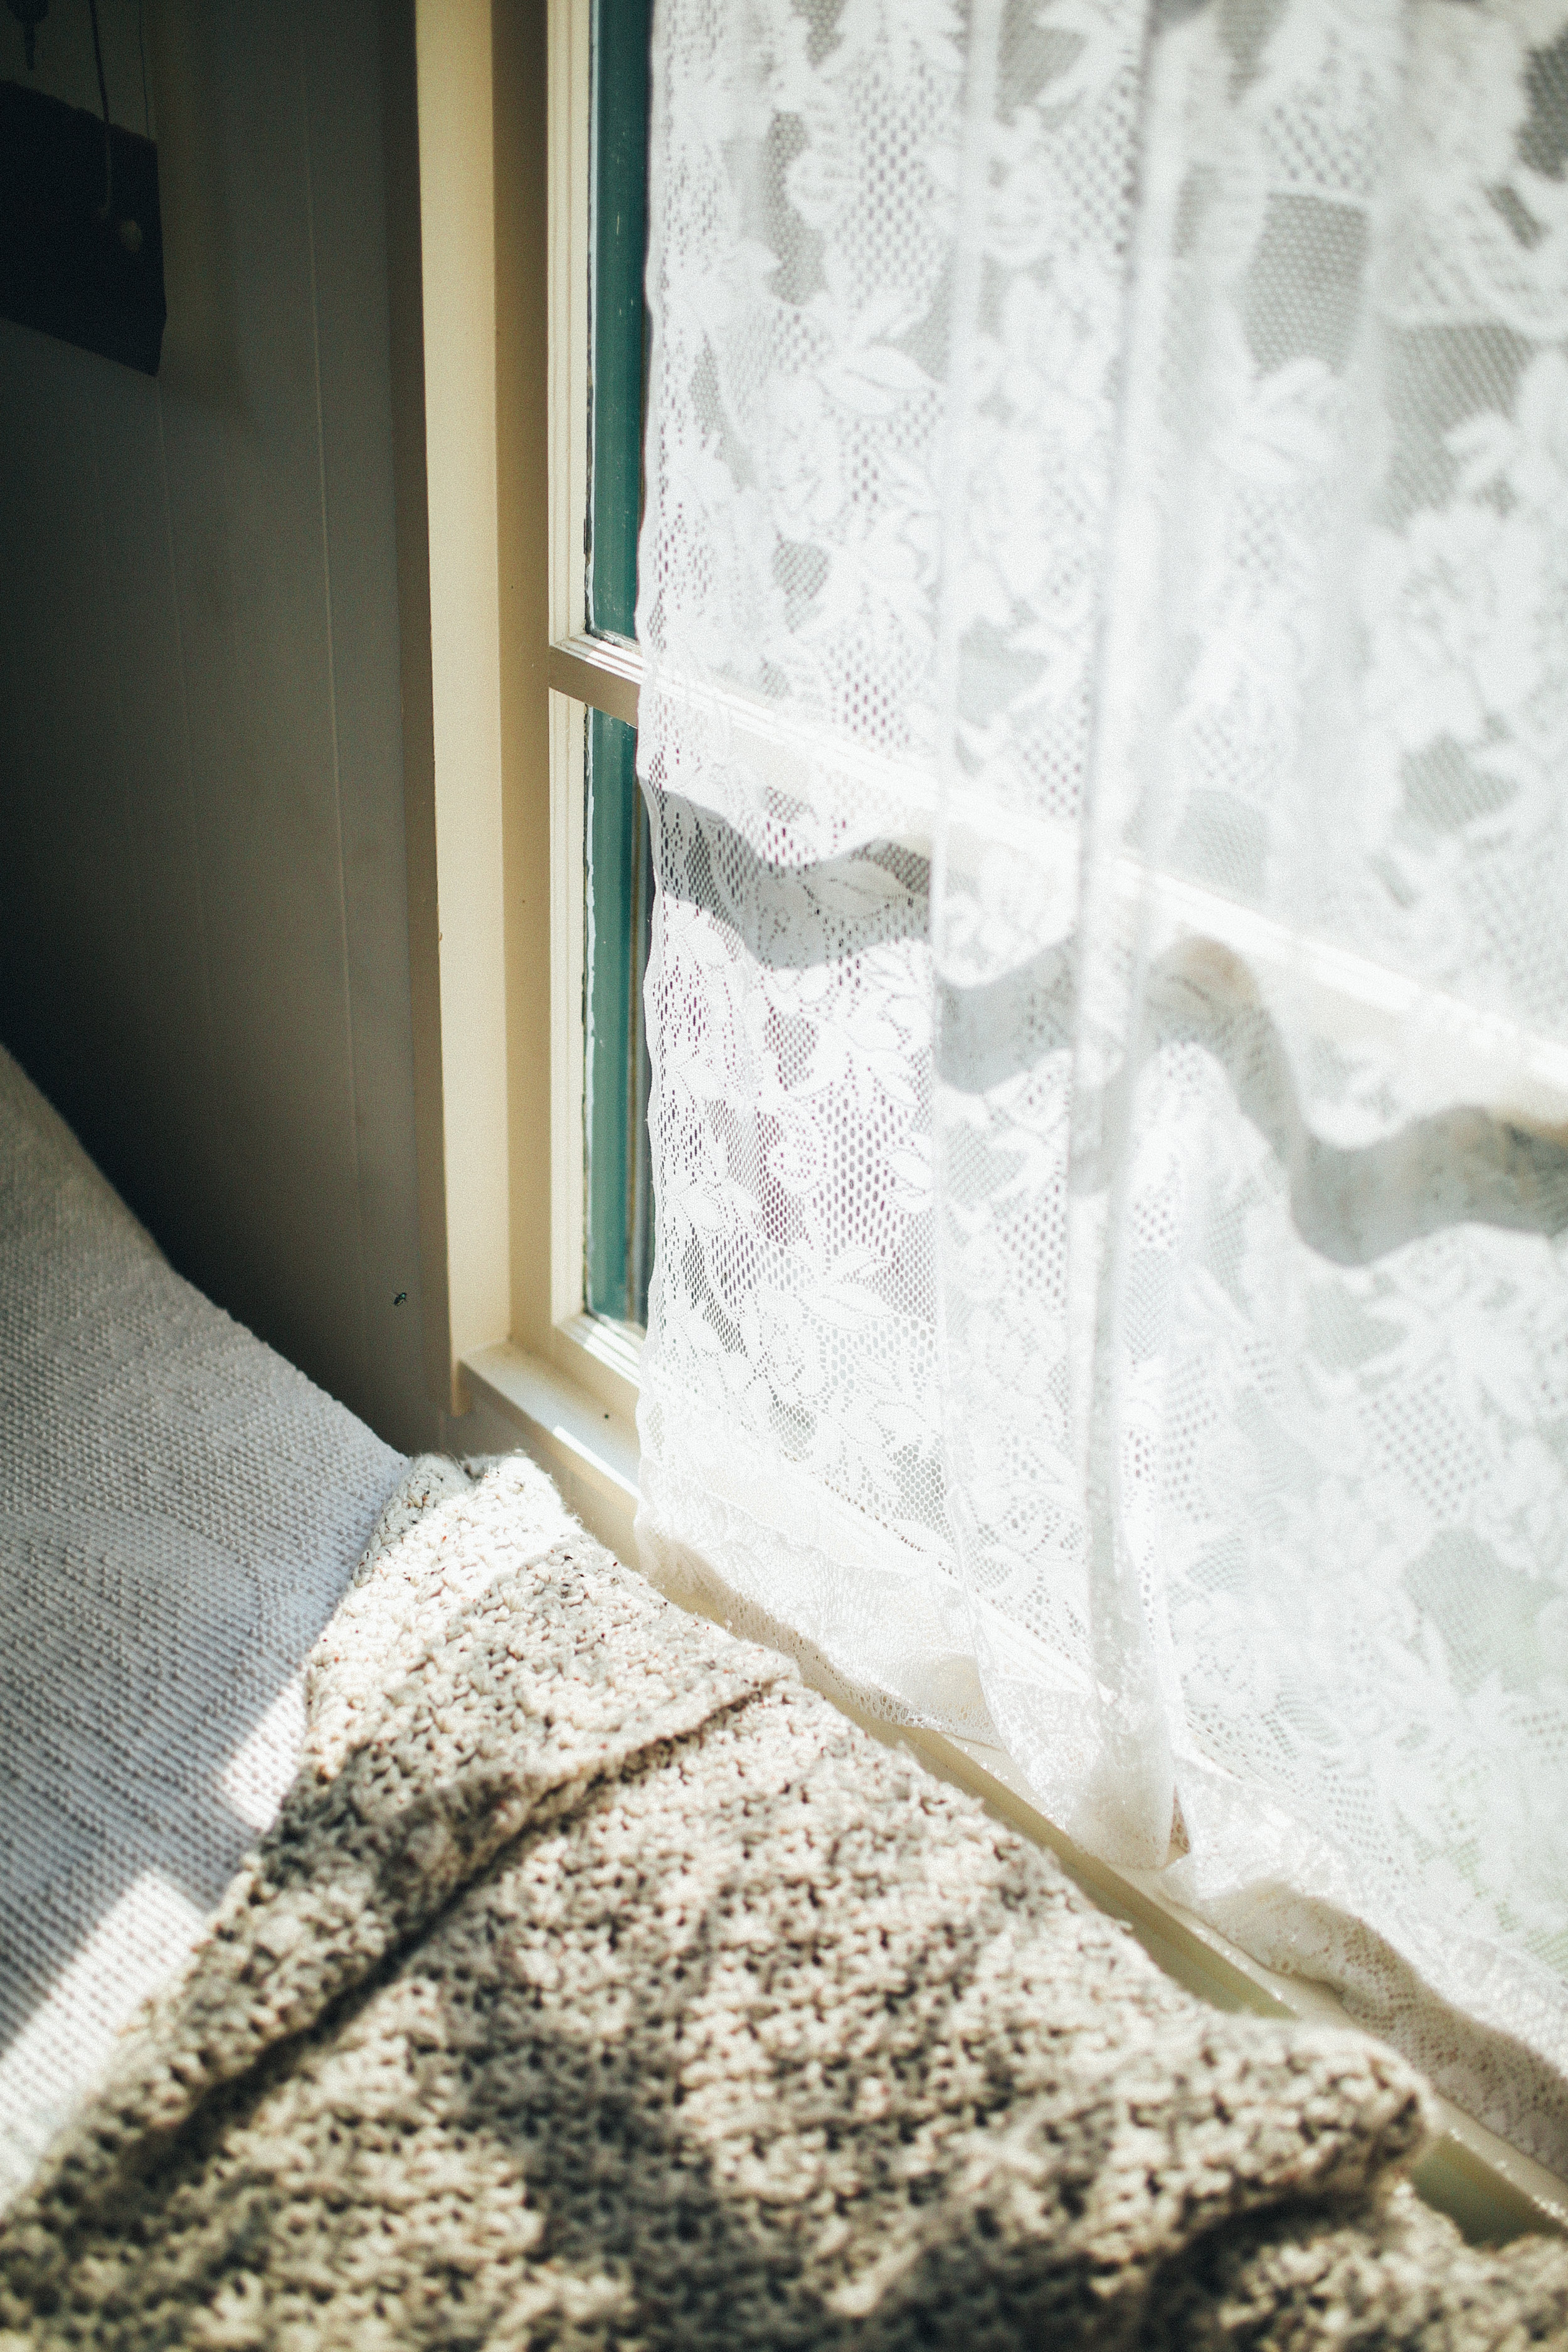 This lace curtain was found at a thrift store for $1.99! I love the way the light filters through it.